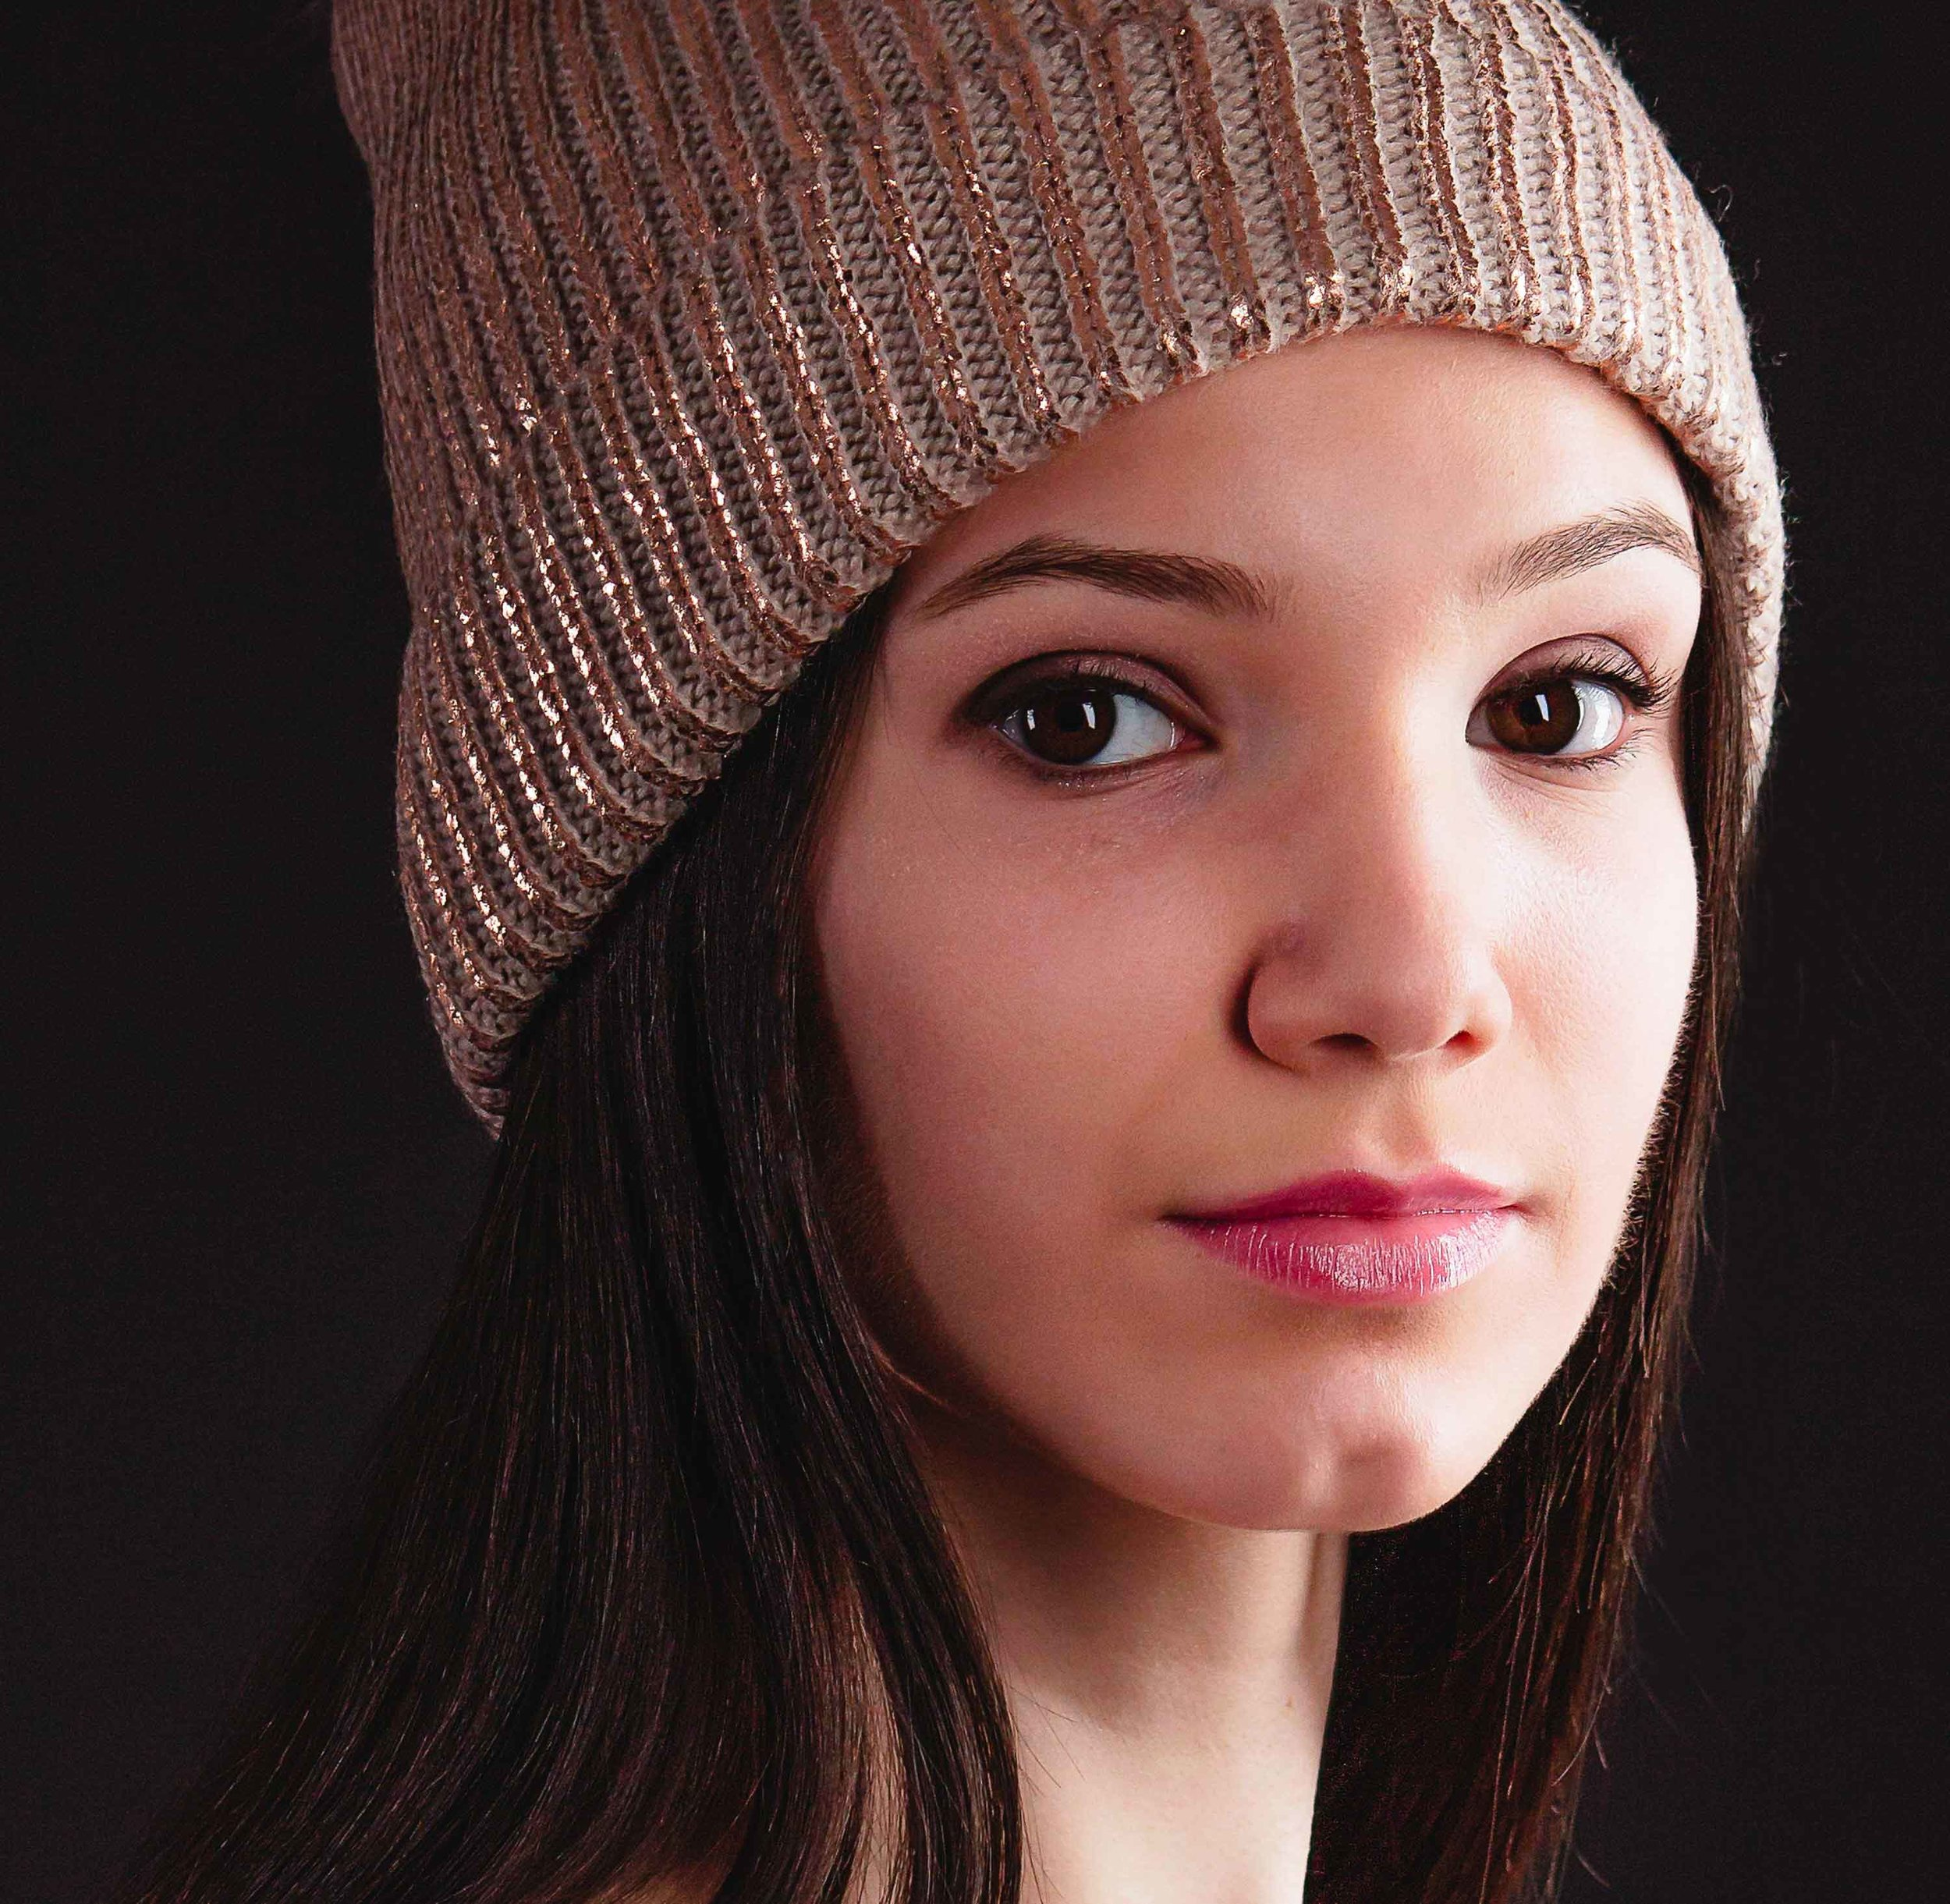 beautiful-woman-with-hat.jpg